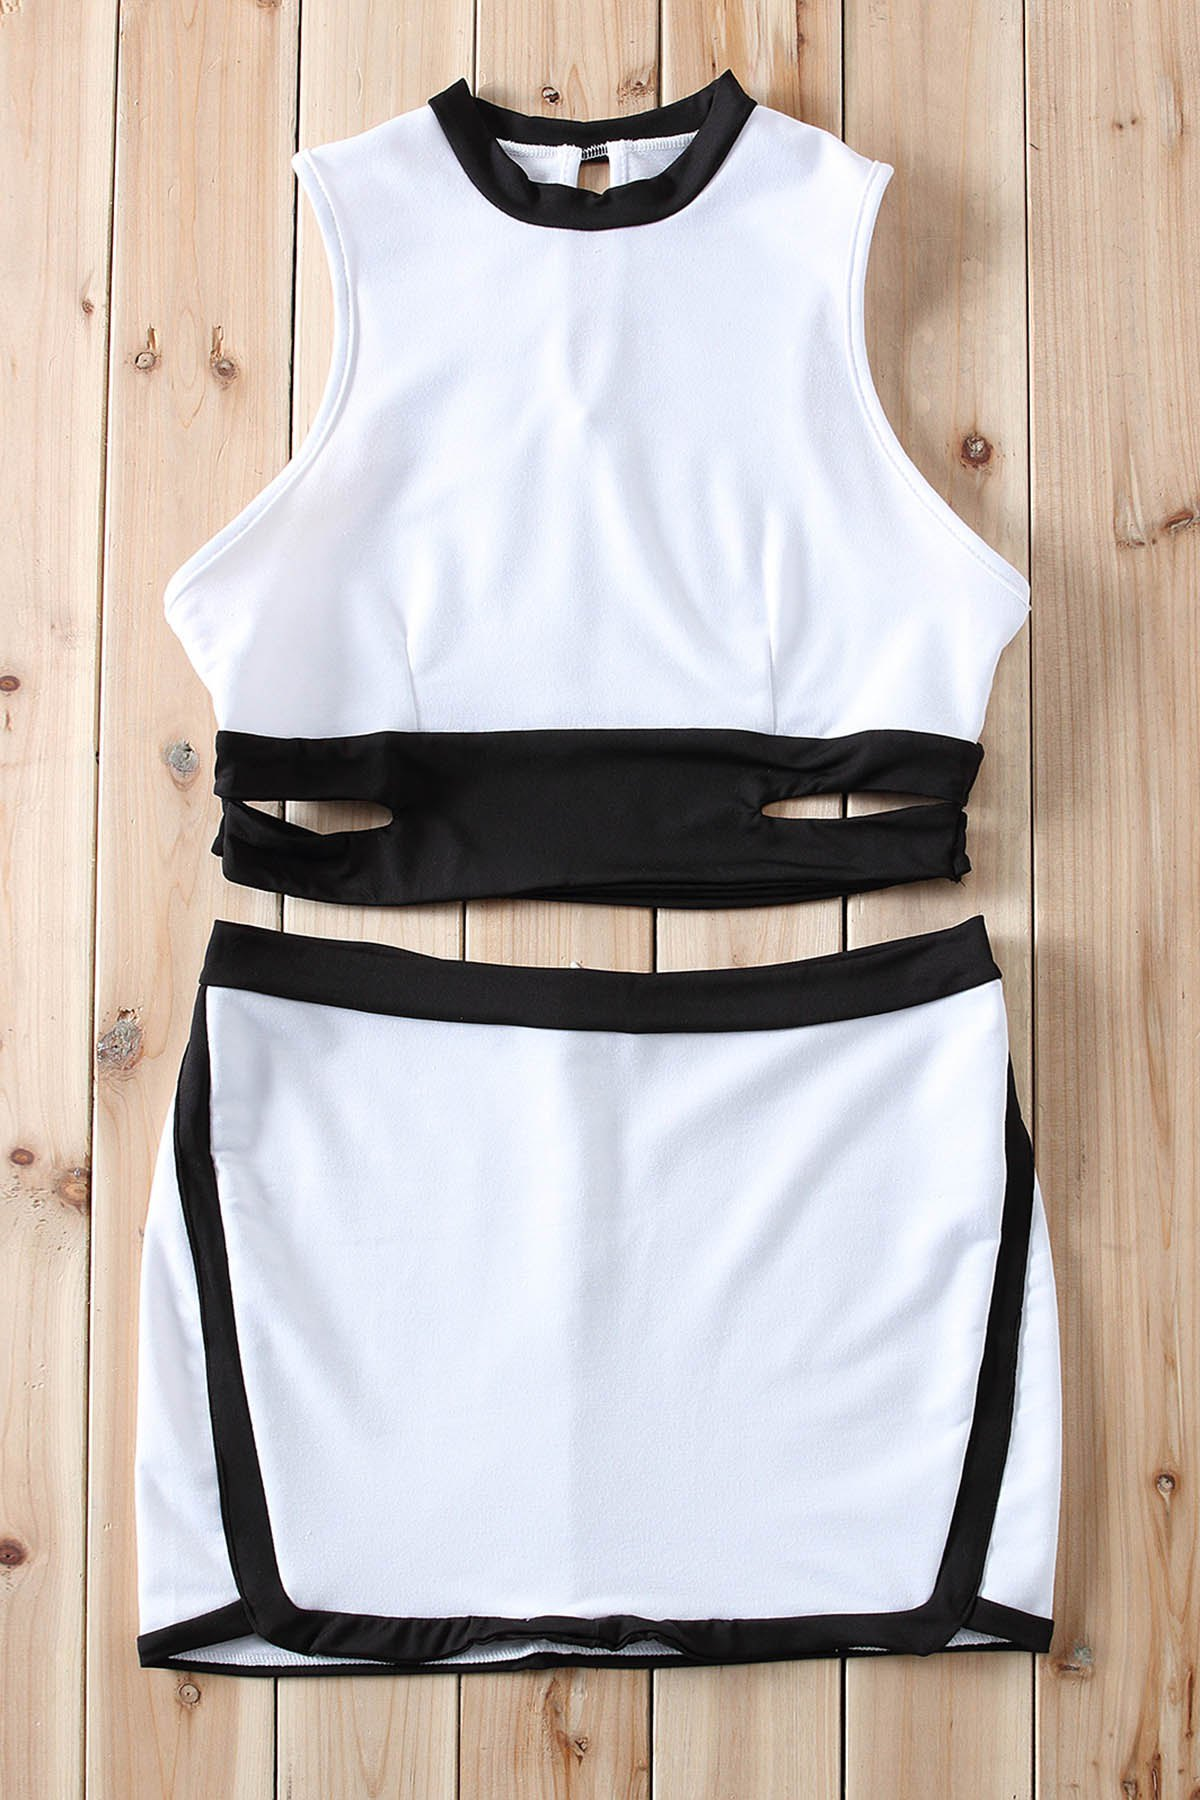 Sexy Hollow Out Stand Collar Backless Crop Top and Skirt Twinset For Women - WHITE S